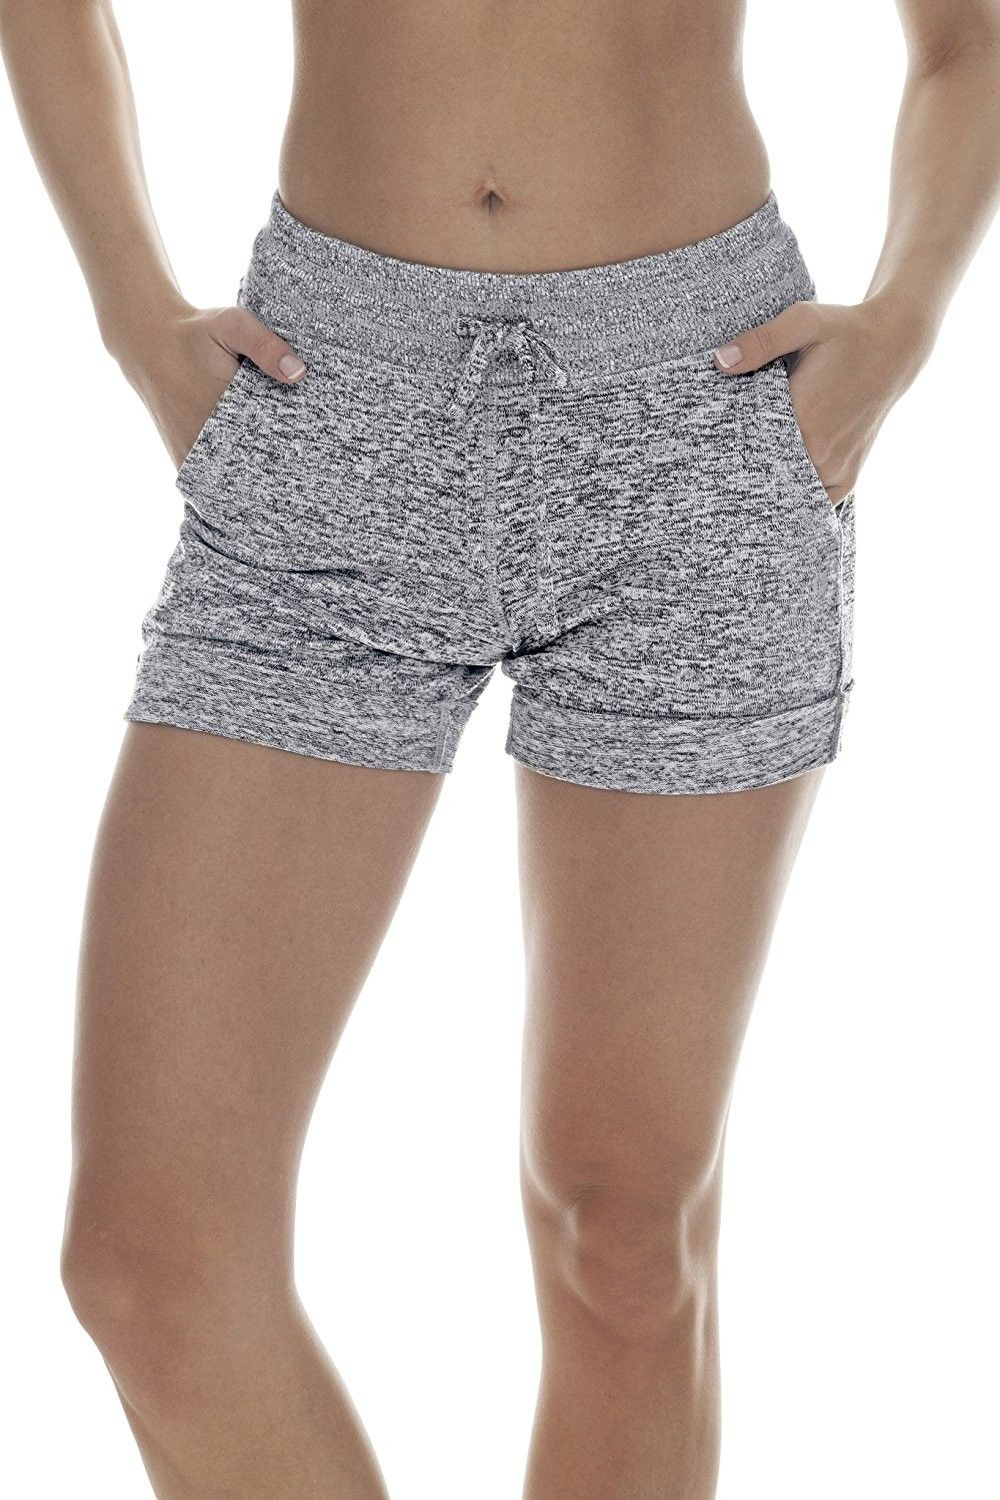 bf9caccfc1 Women's Clothing, Active, Active Shorts, Activewear Lounge Shorts - Heather  Grey - CW1277DR9KN #Clothing #fashion #Active #style #Sexy #shopping